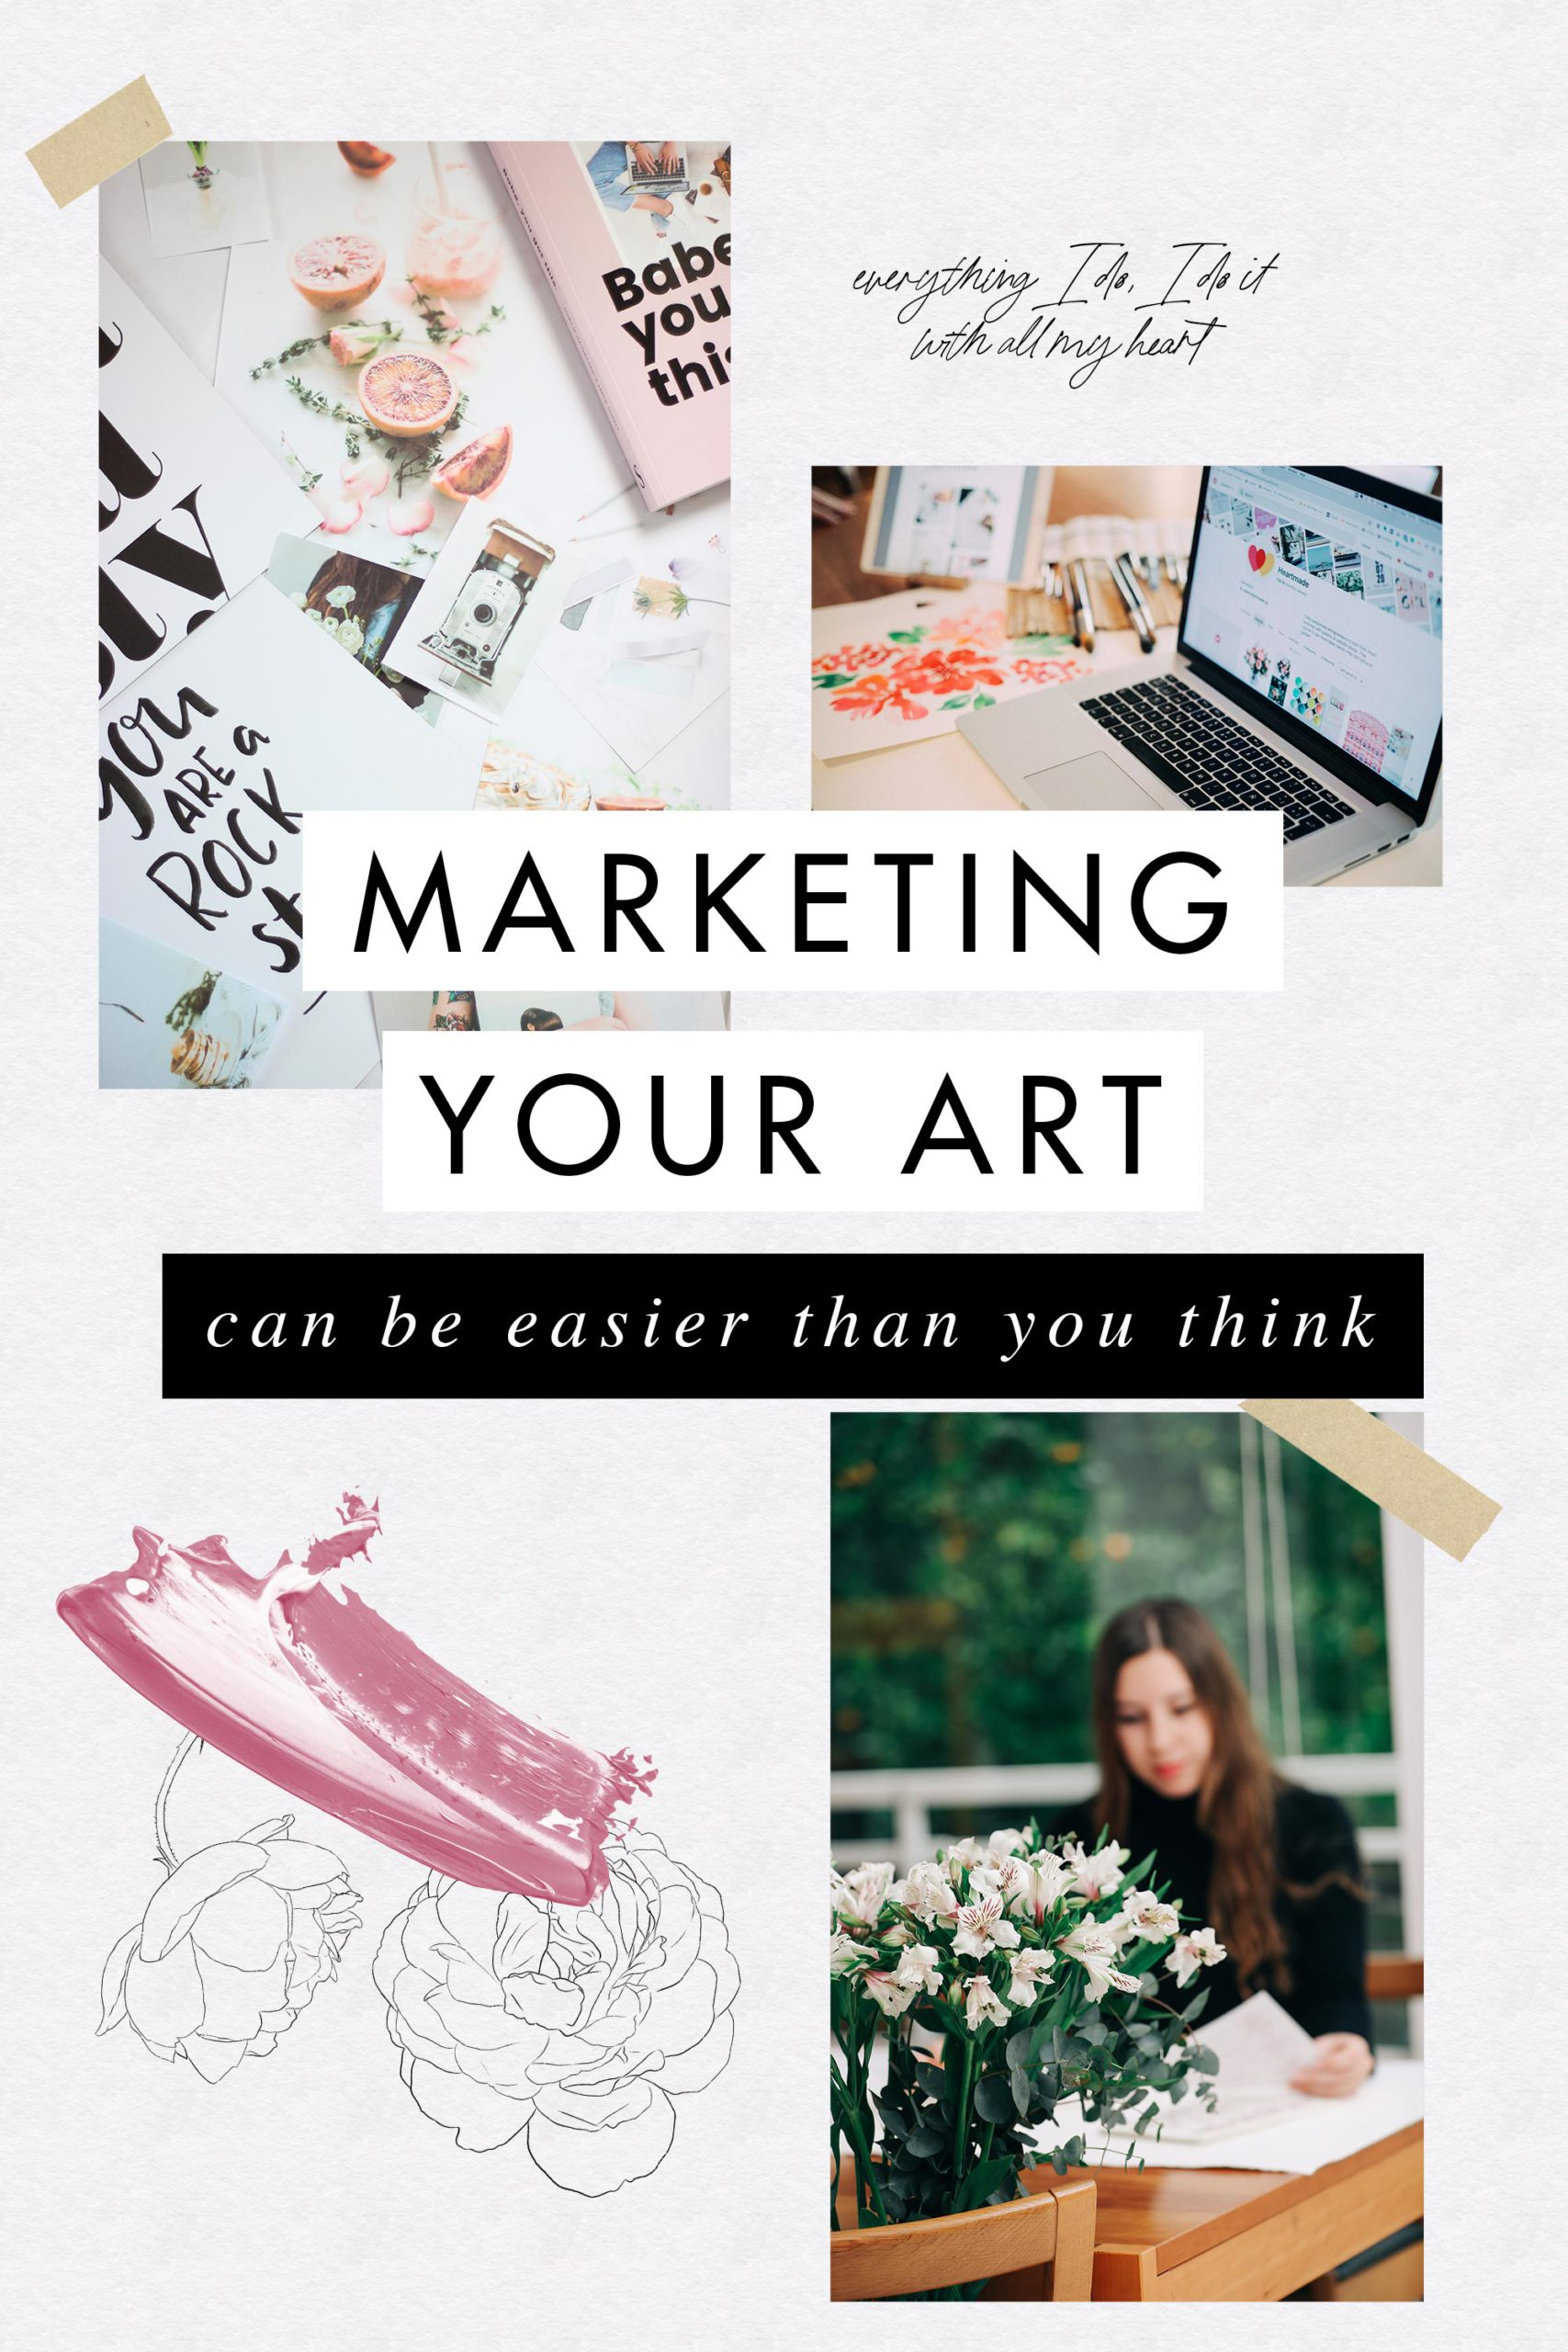 hy Getting Your Art Noticed Online Is Difficult? Learn how marketing your art can be easier than you think